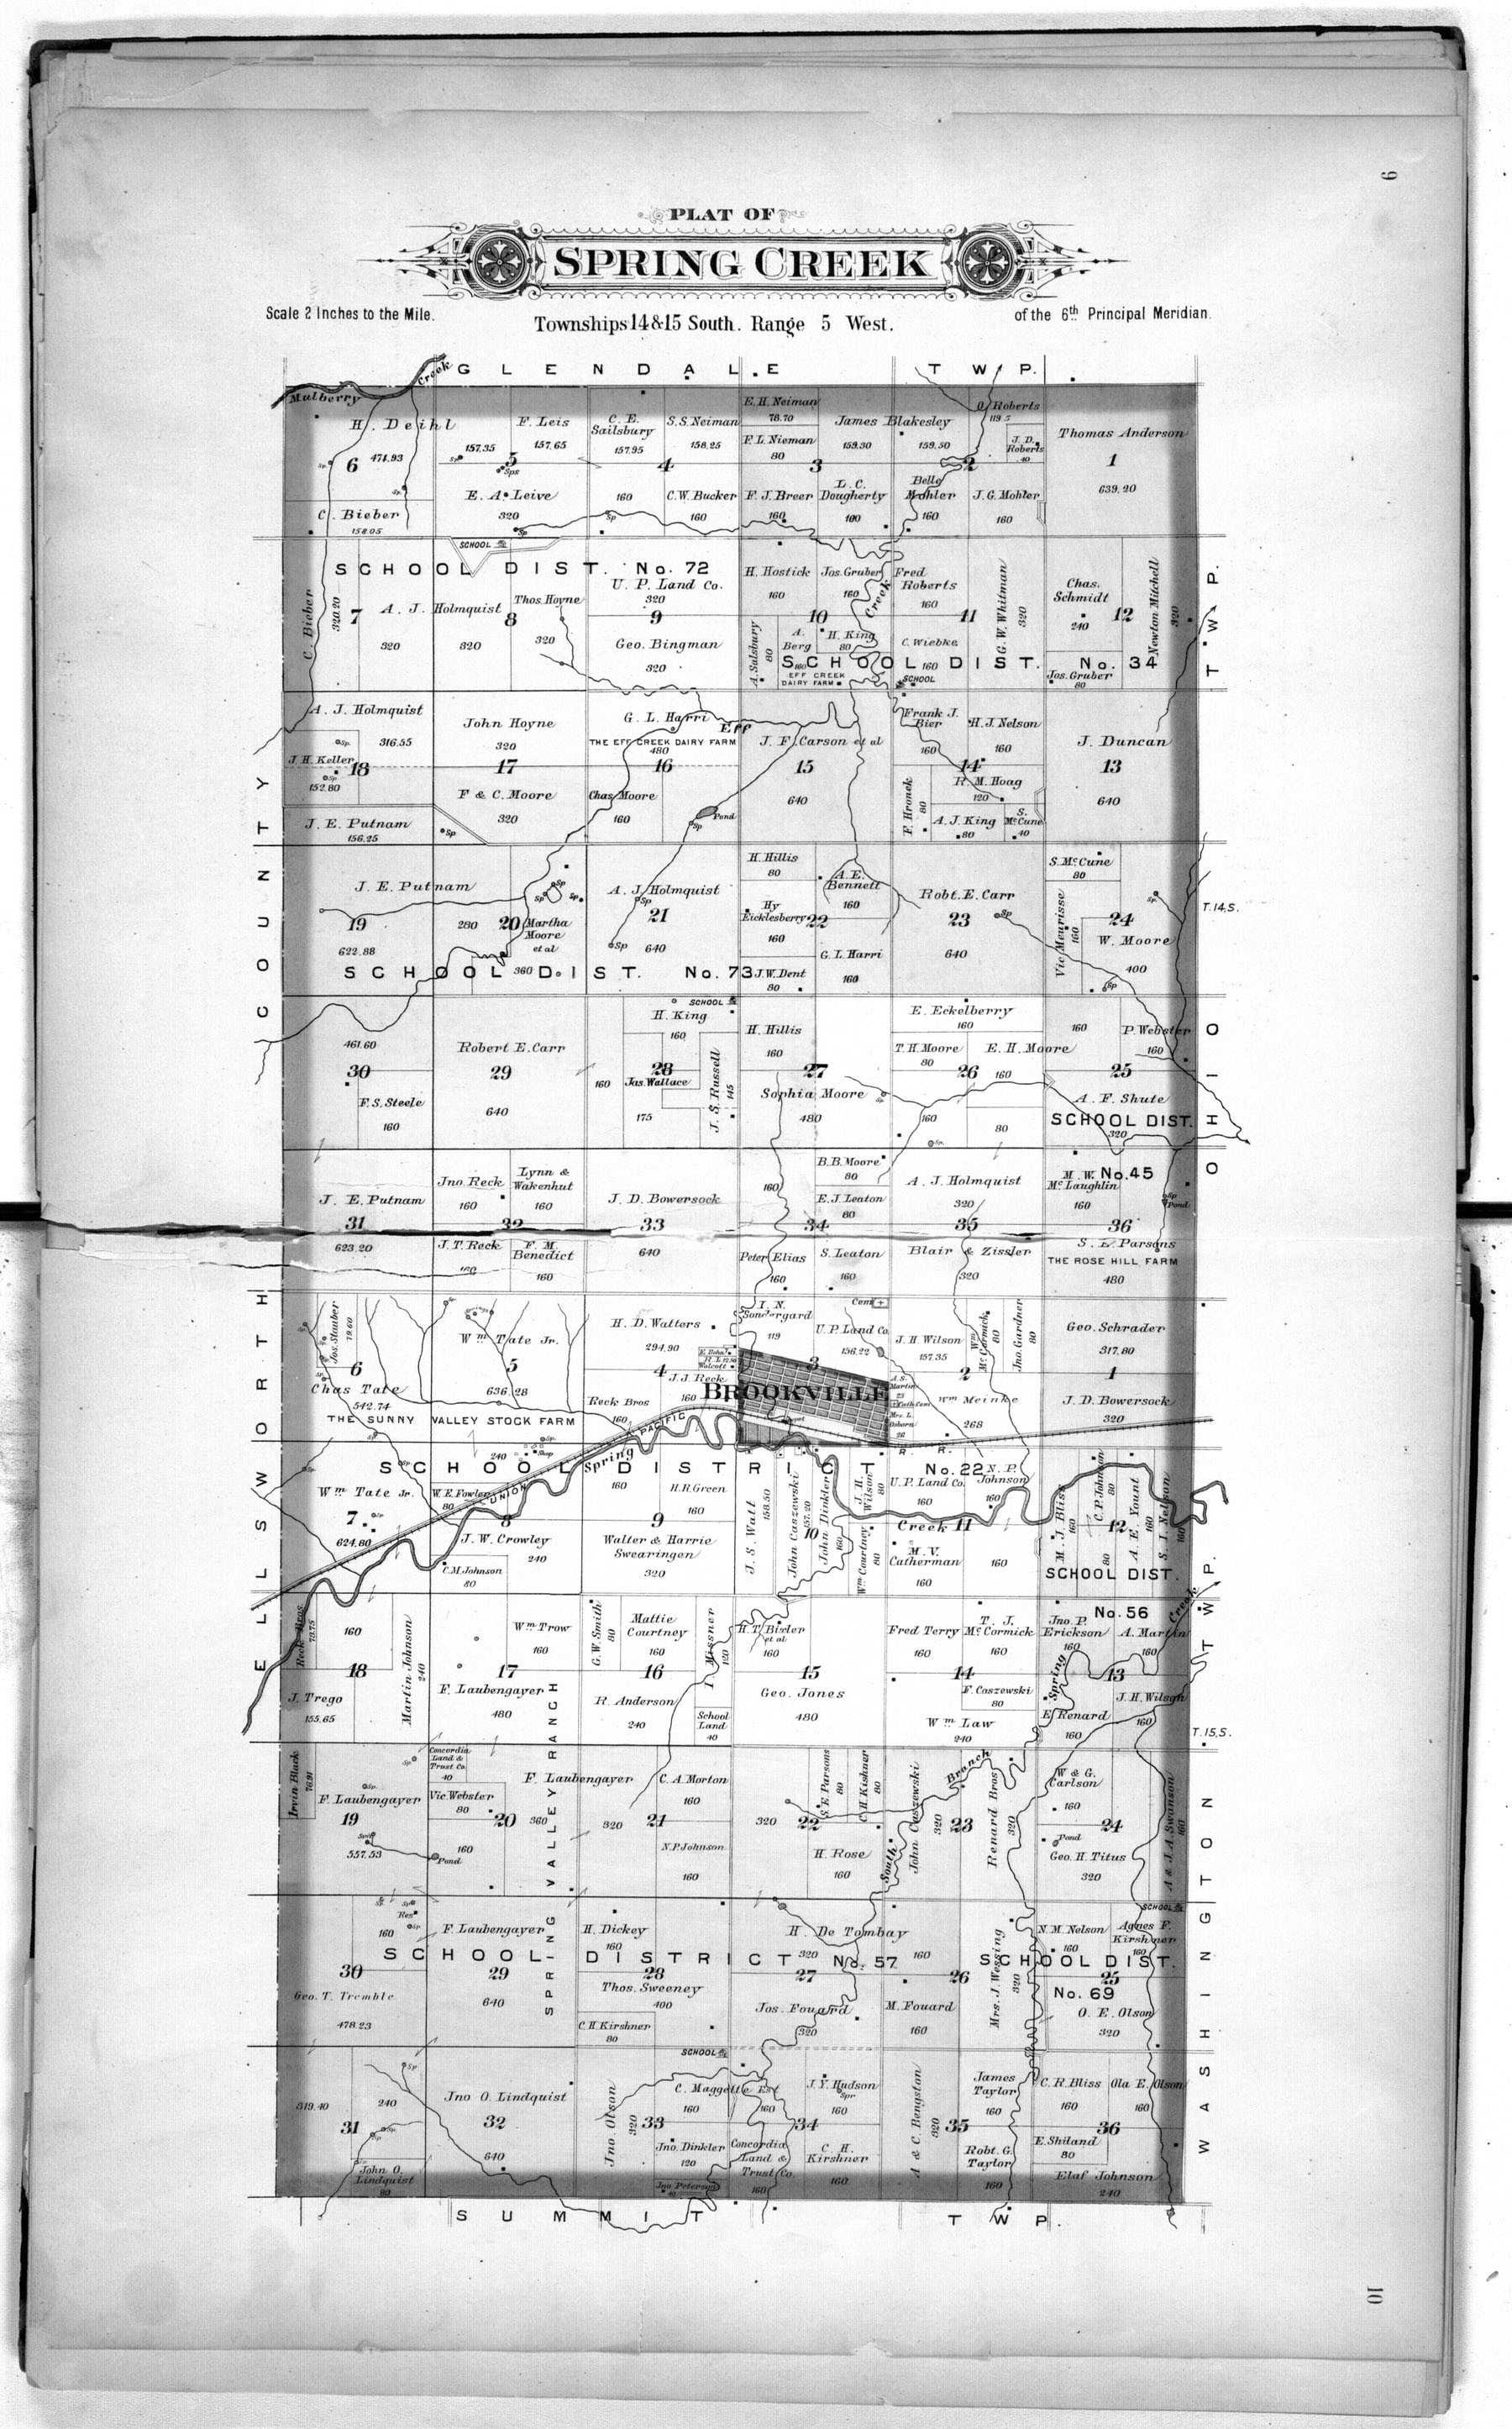 Plat book of Saline County, Kansas - 9 & 10